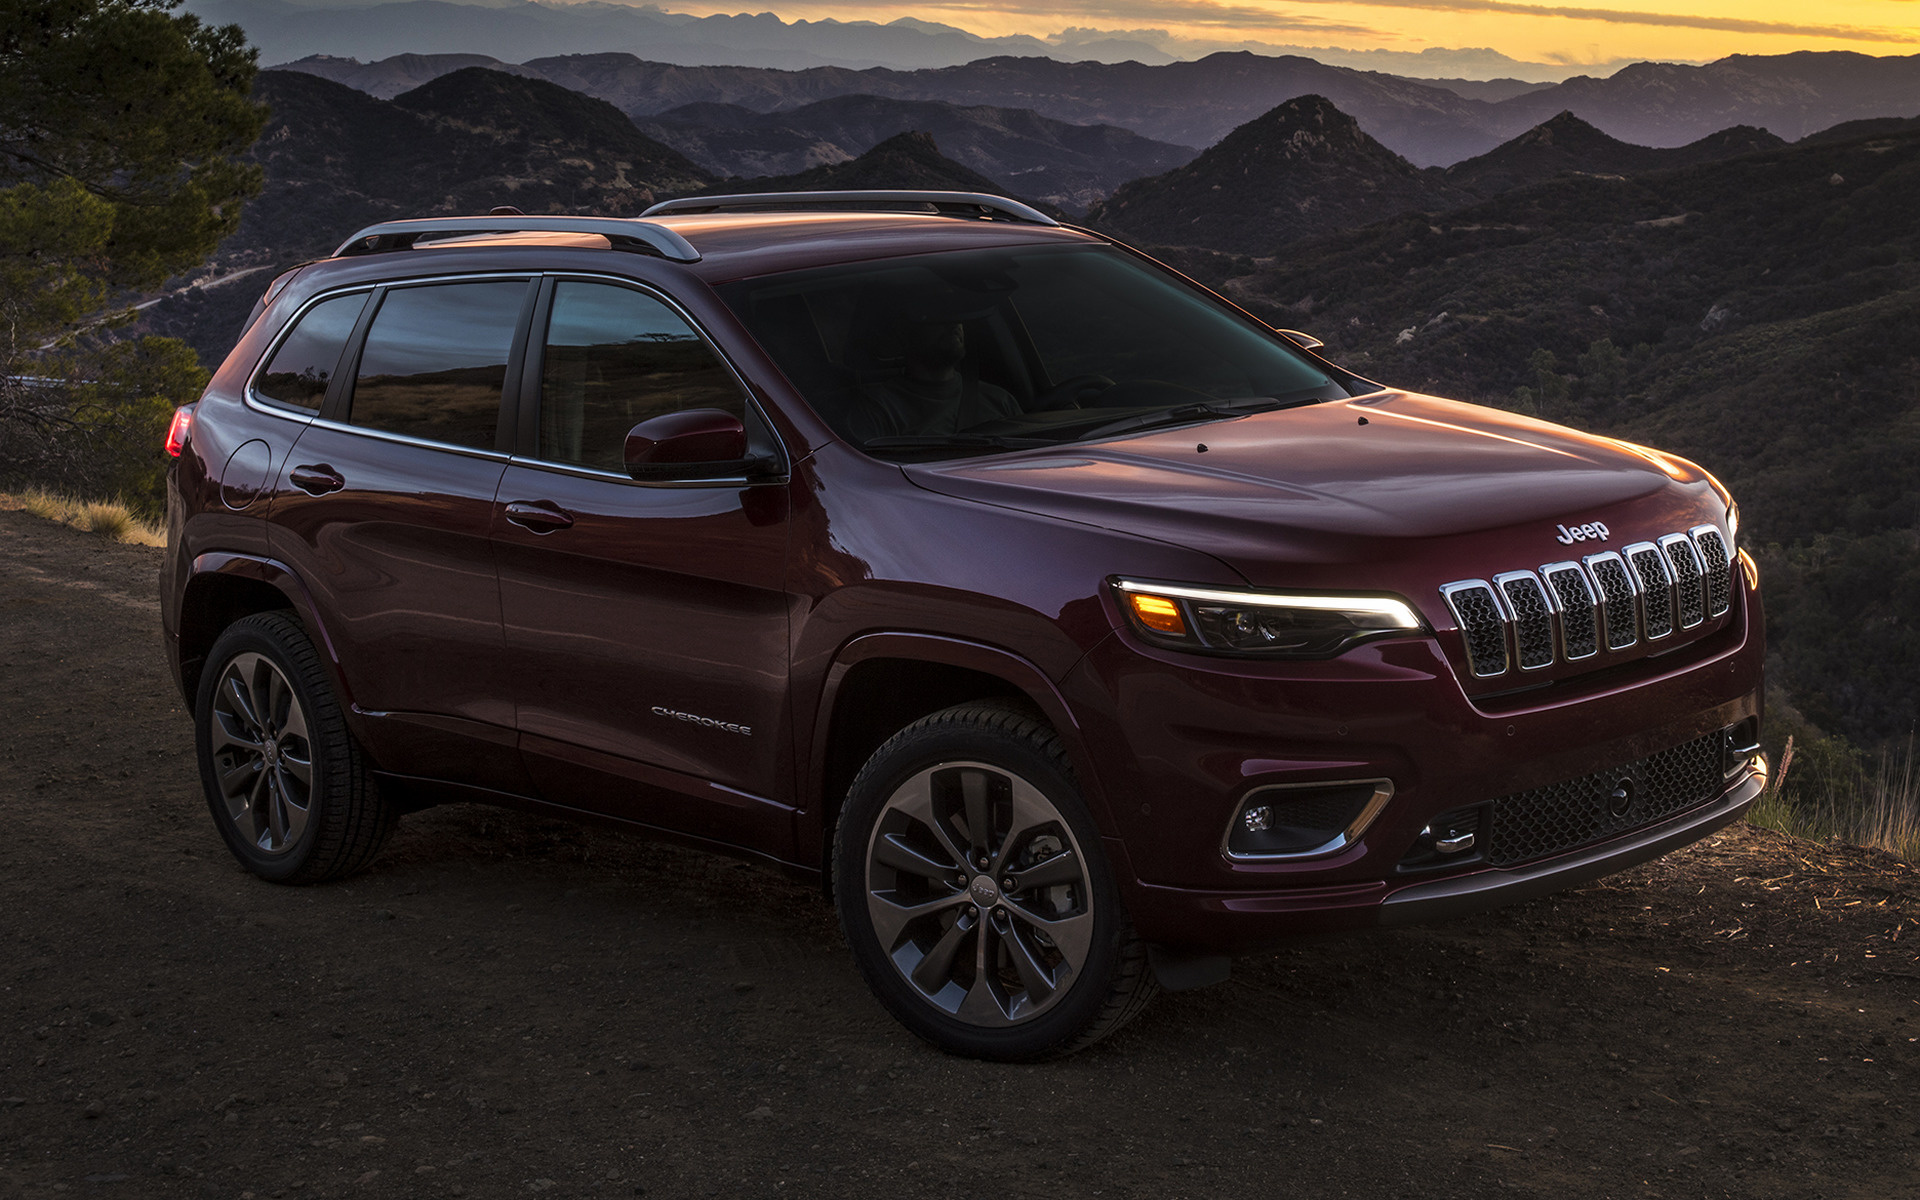 Jeep Cherokee Overland 2018 Wallpapers and HD Car Pixel